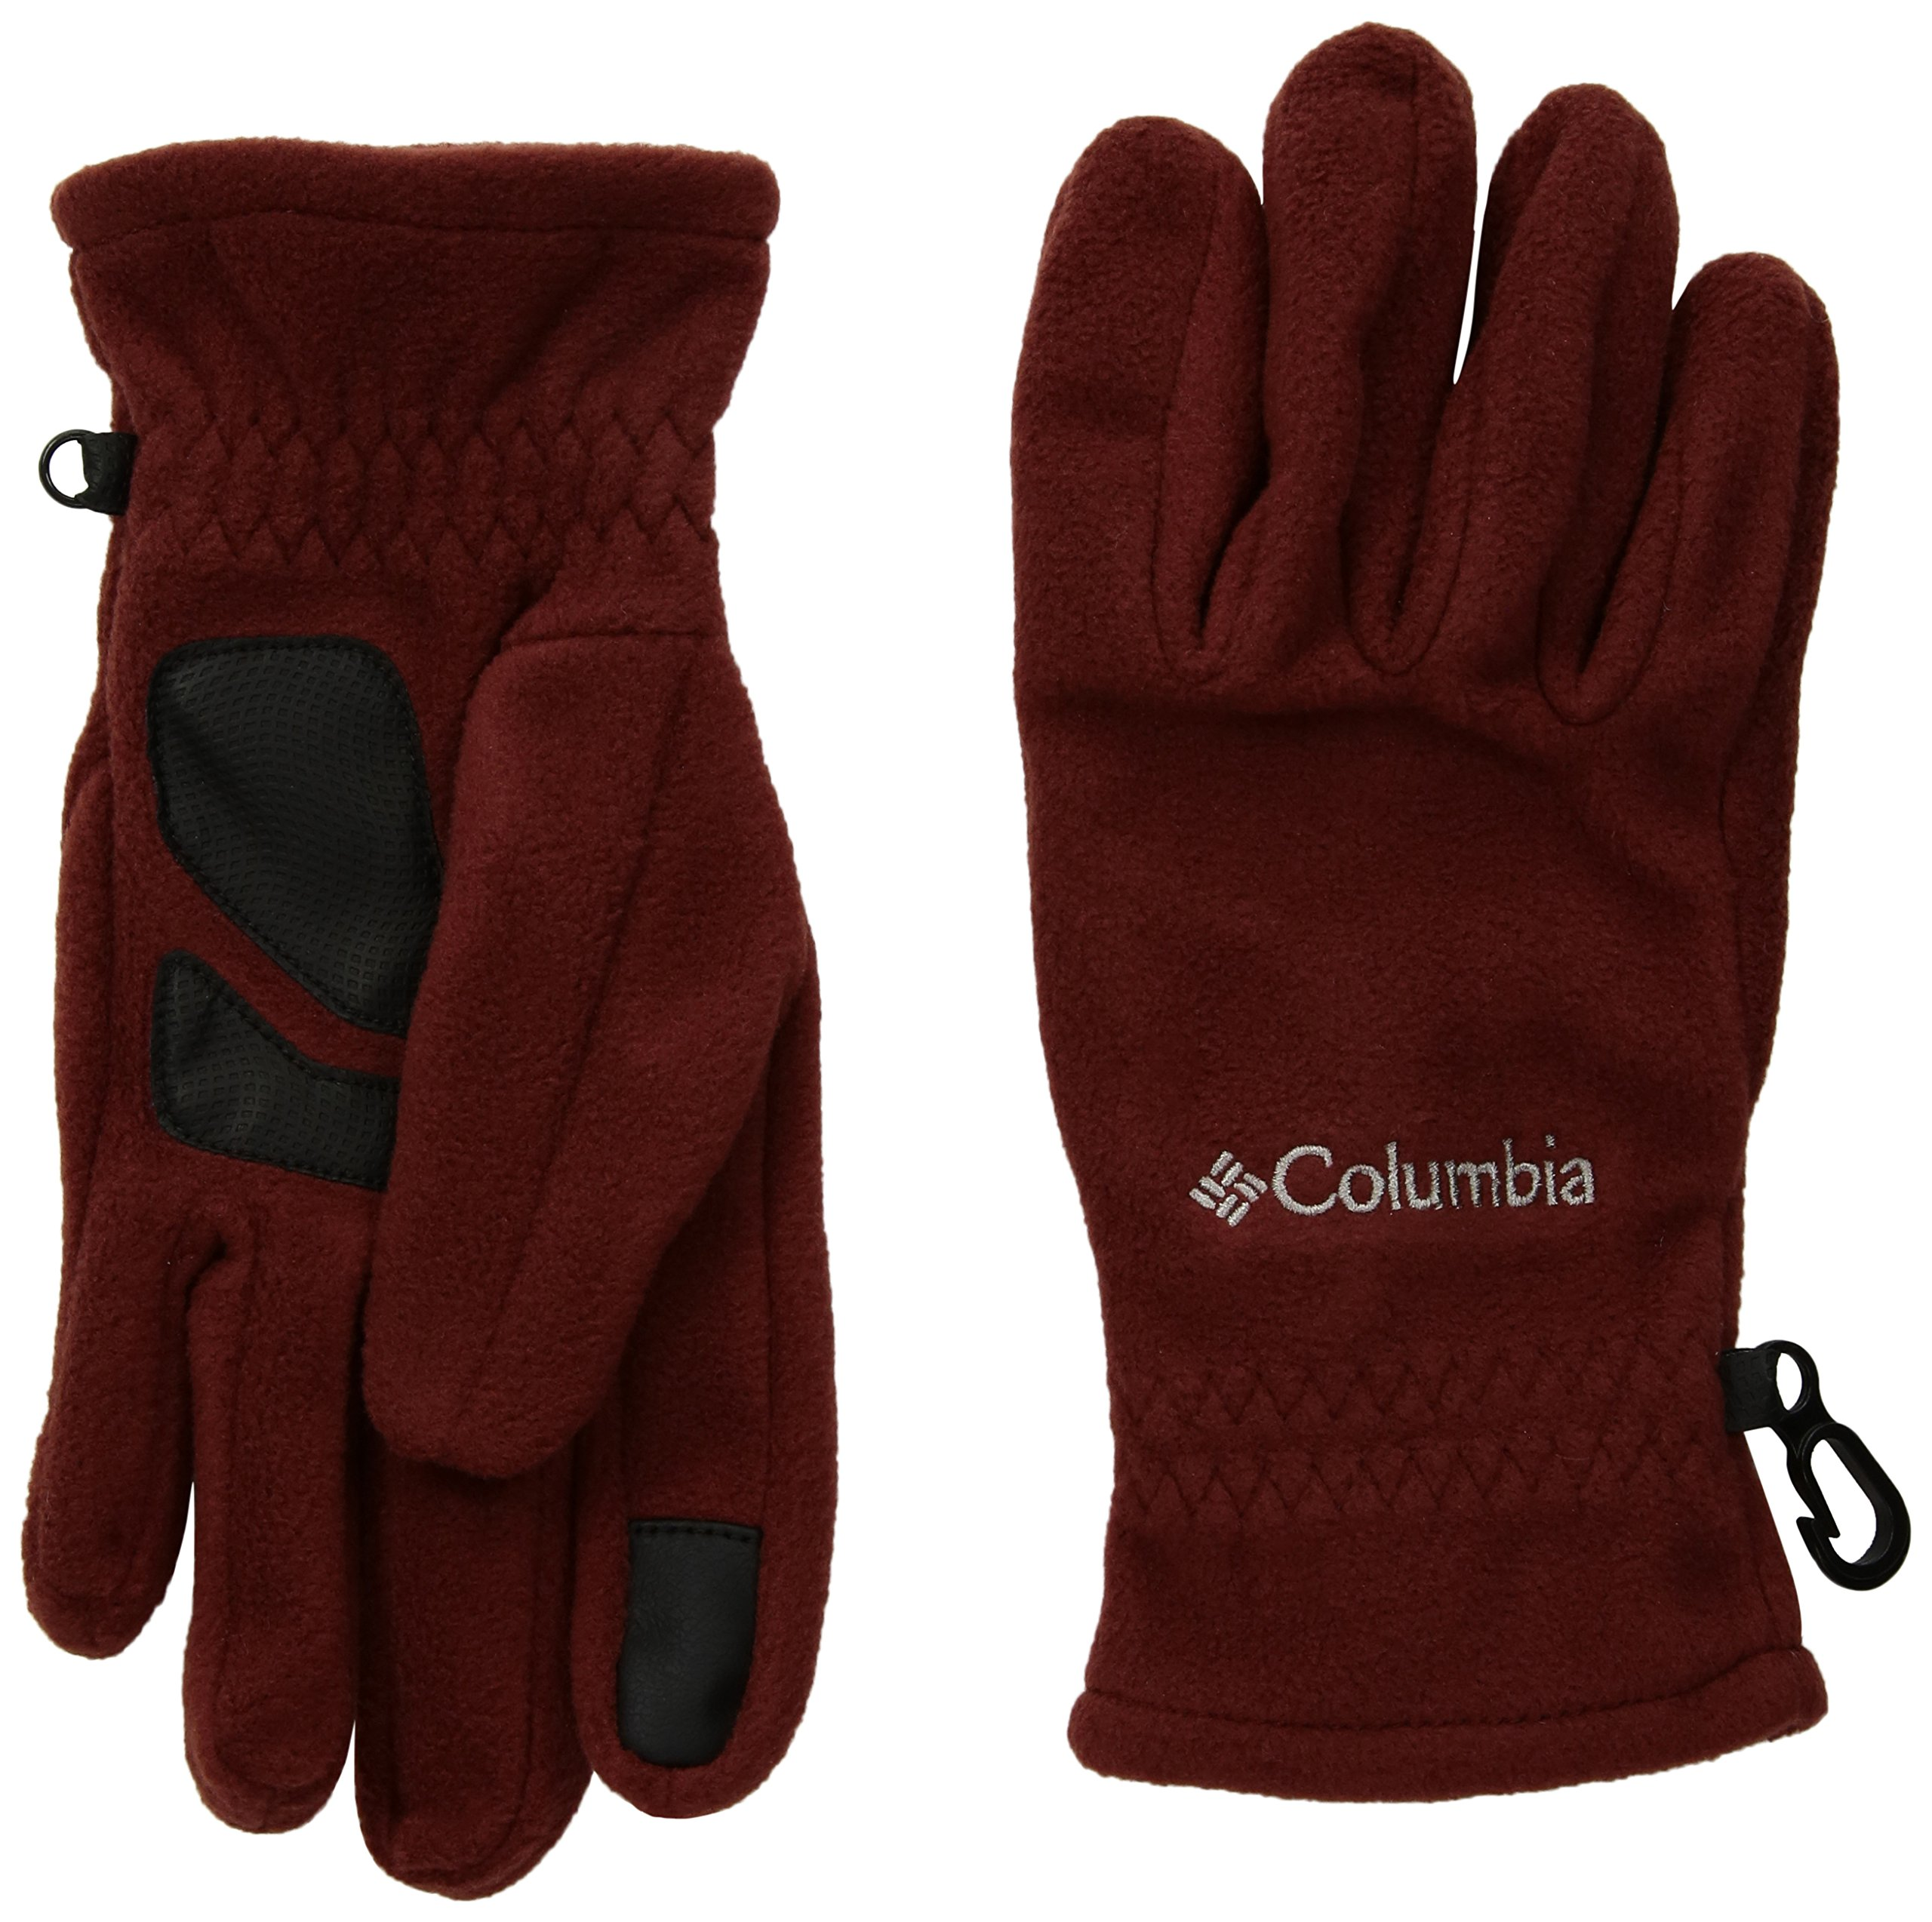 Columbia Women's Thermarator Gloves, Deep Rust, Large by Columbia